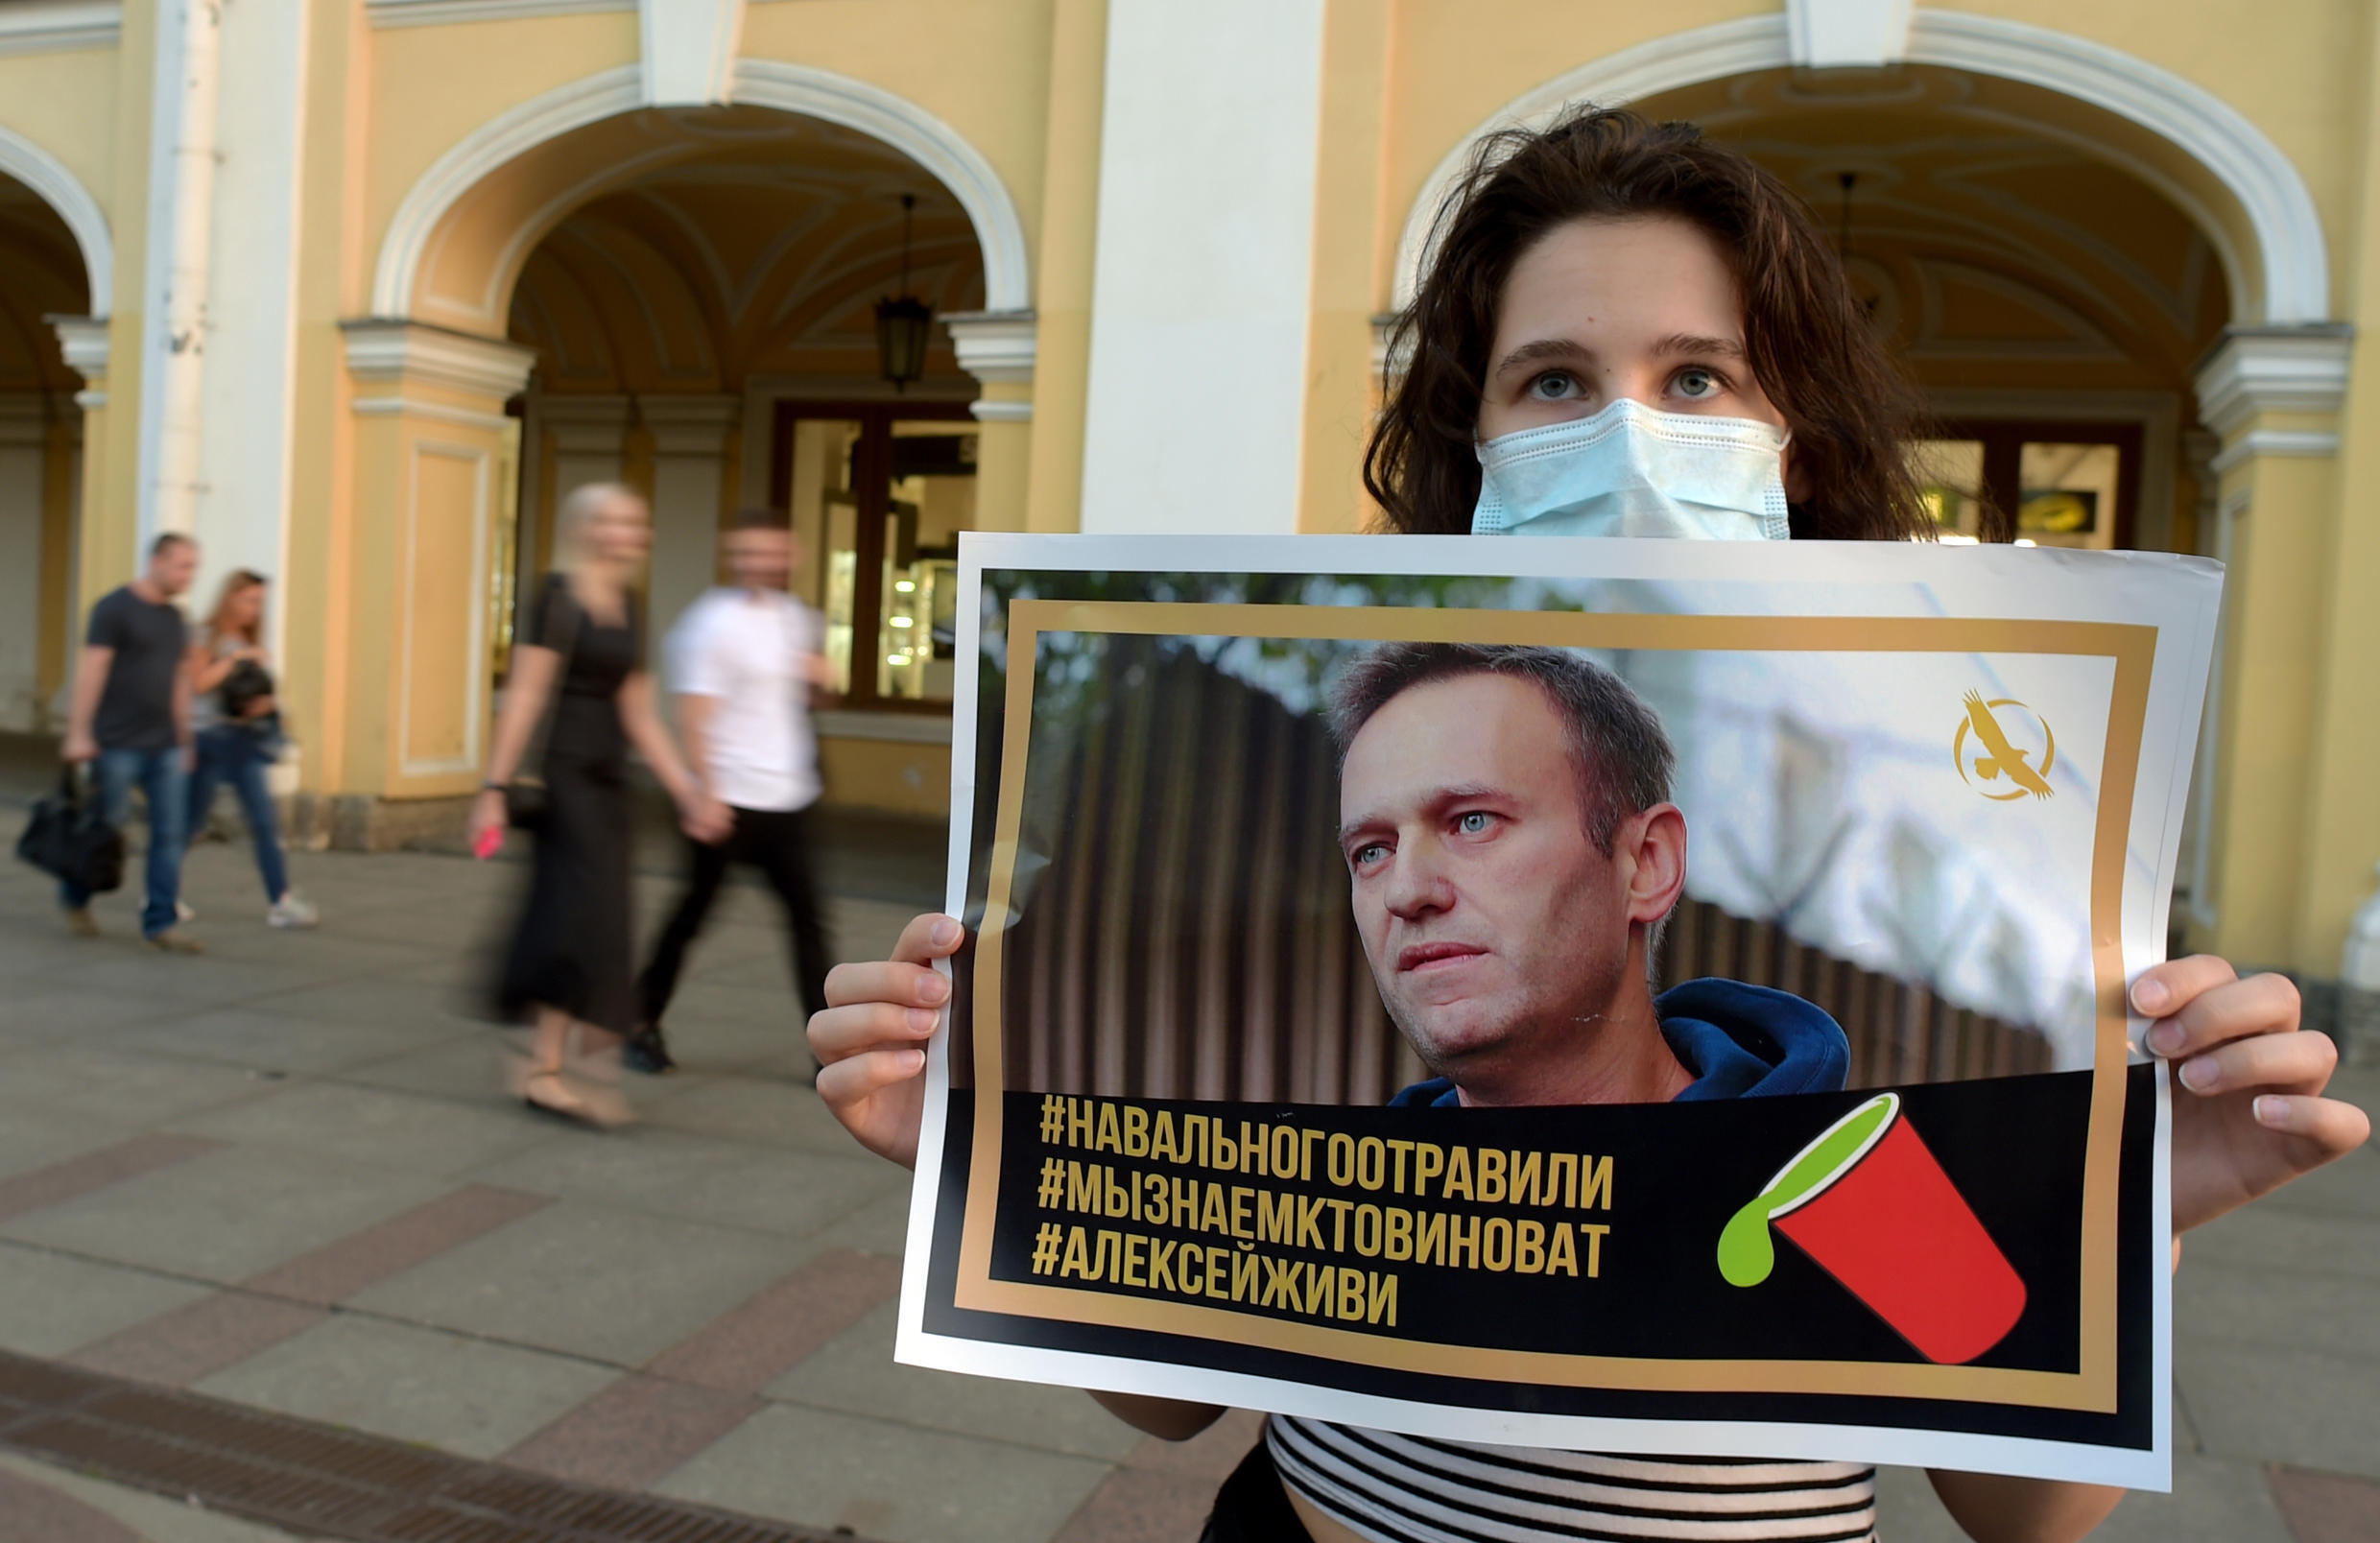 A supporter of Alexei Navalny holds up a picture of the Kremlin opponent after he was taken ill with suspected poisoning